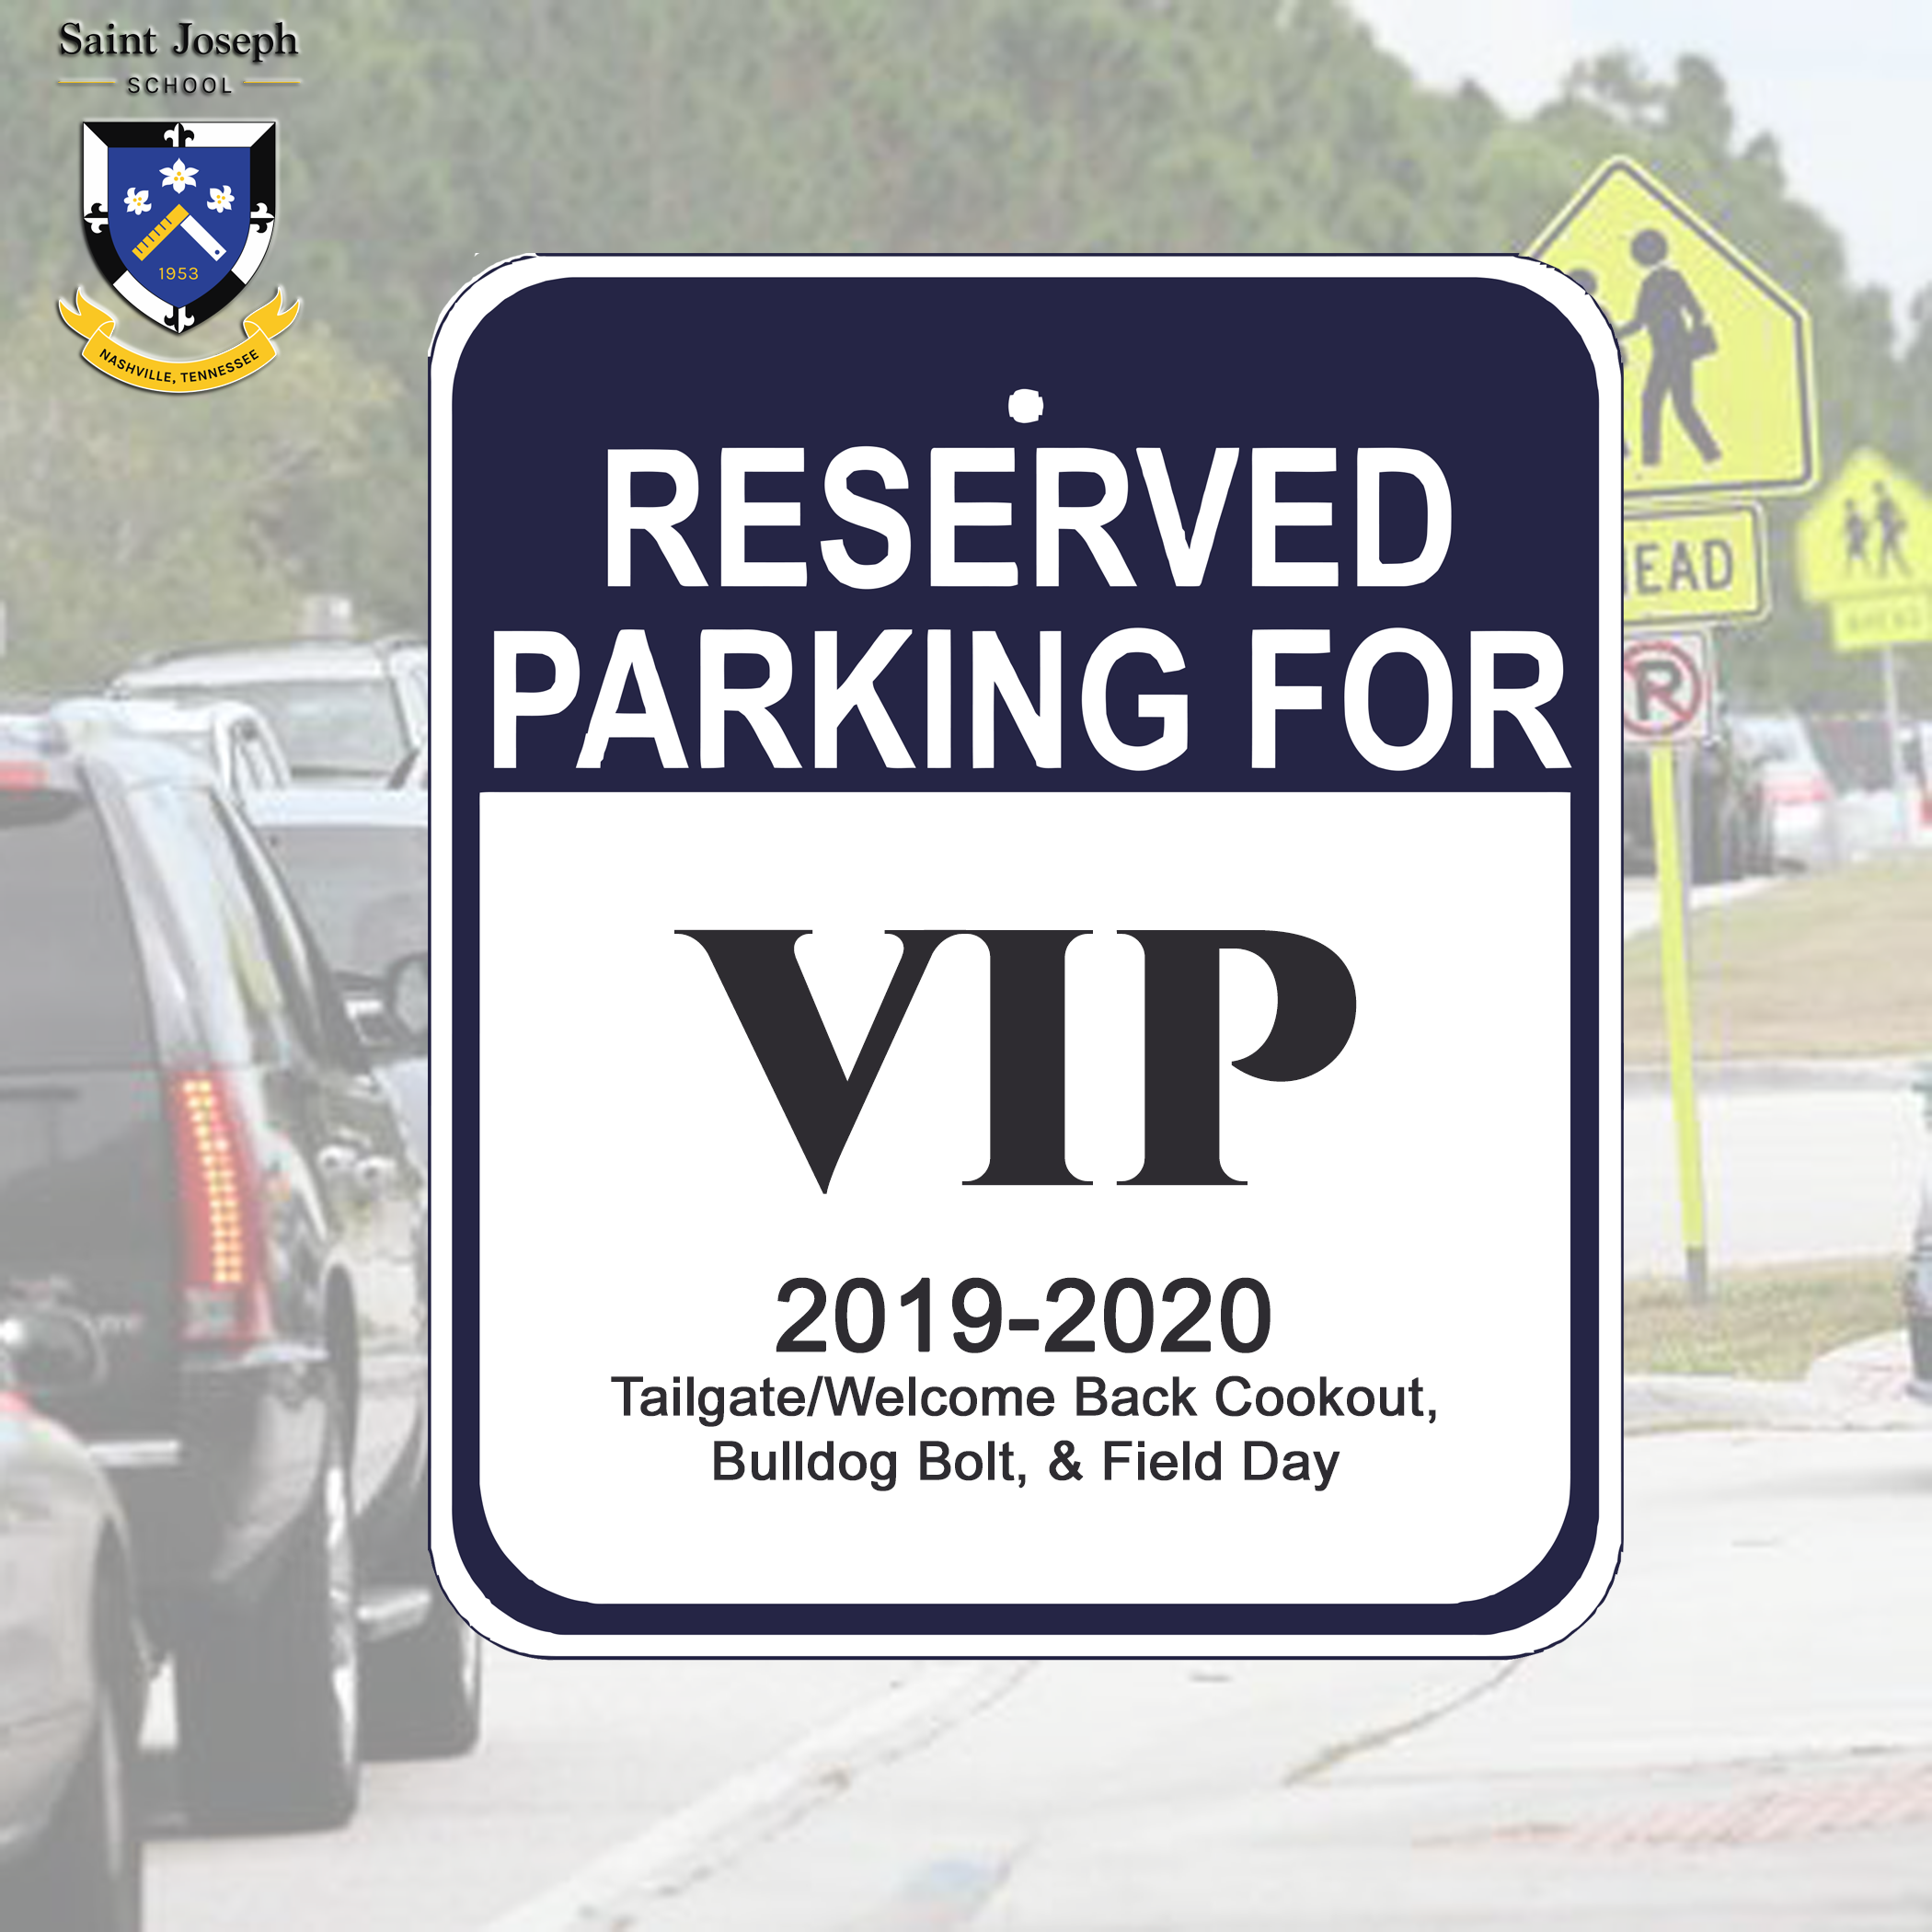 $100.00 - Reserved Parking for Welcome Back, Bulldog Bolt & Field Day